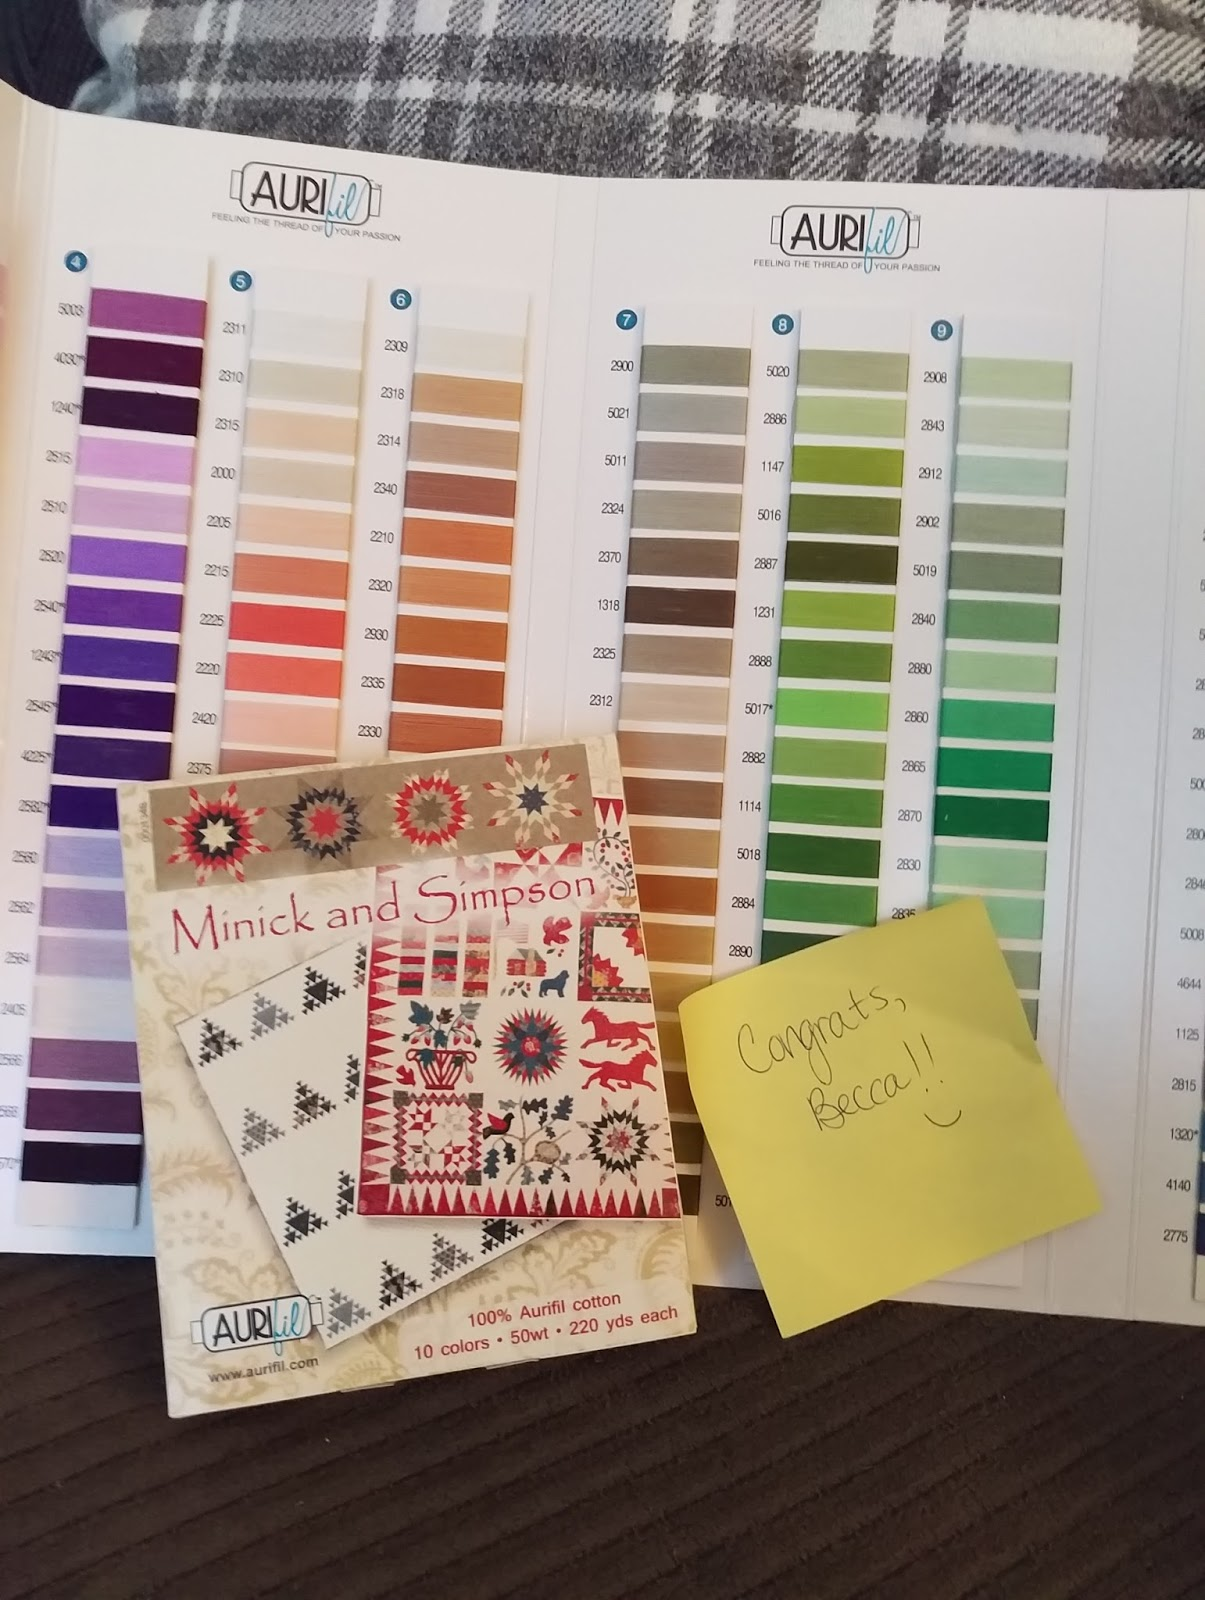 Aurifil thread reference card